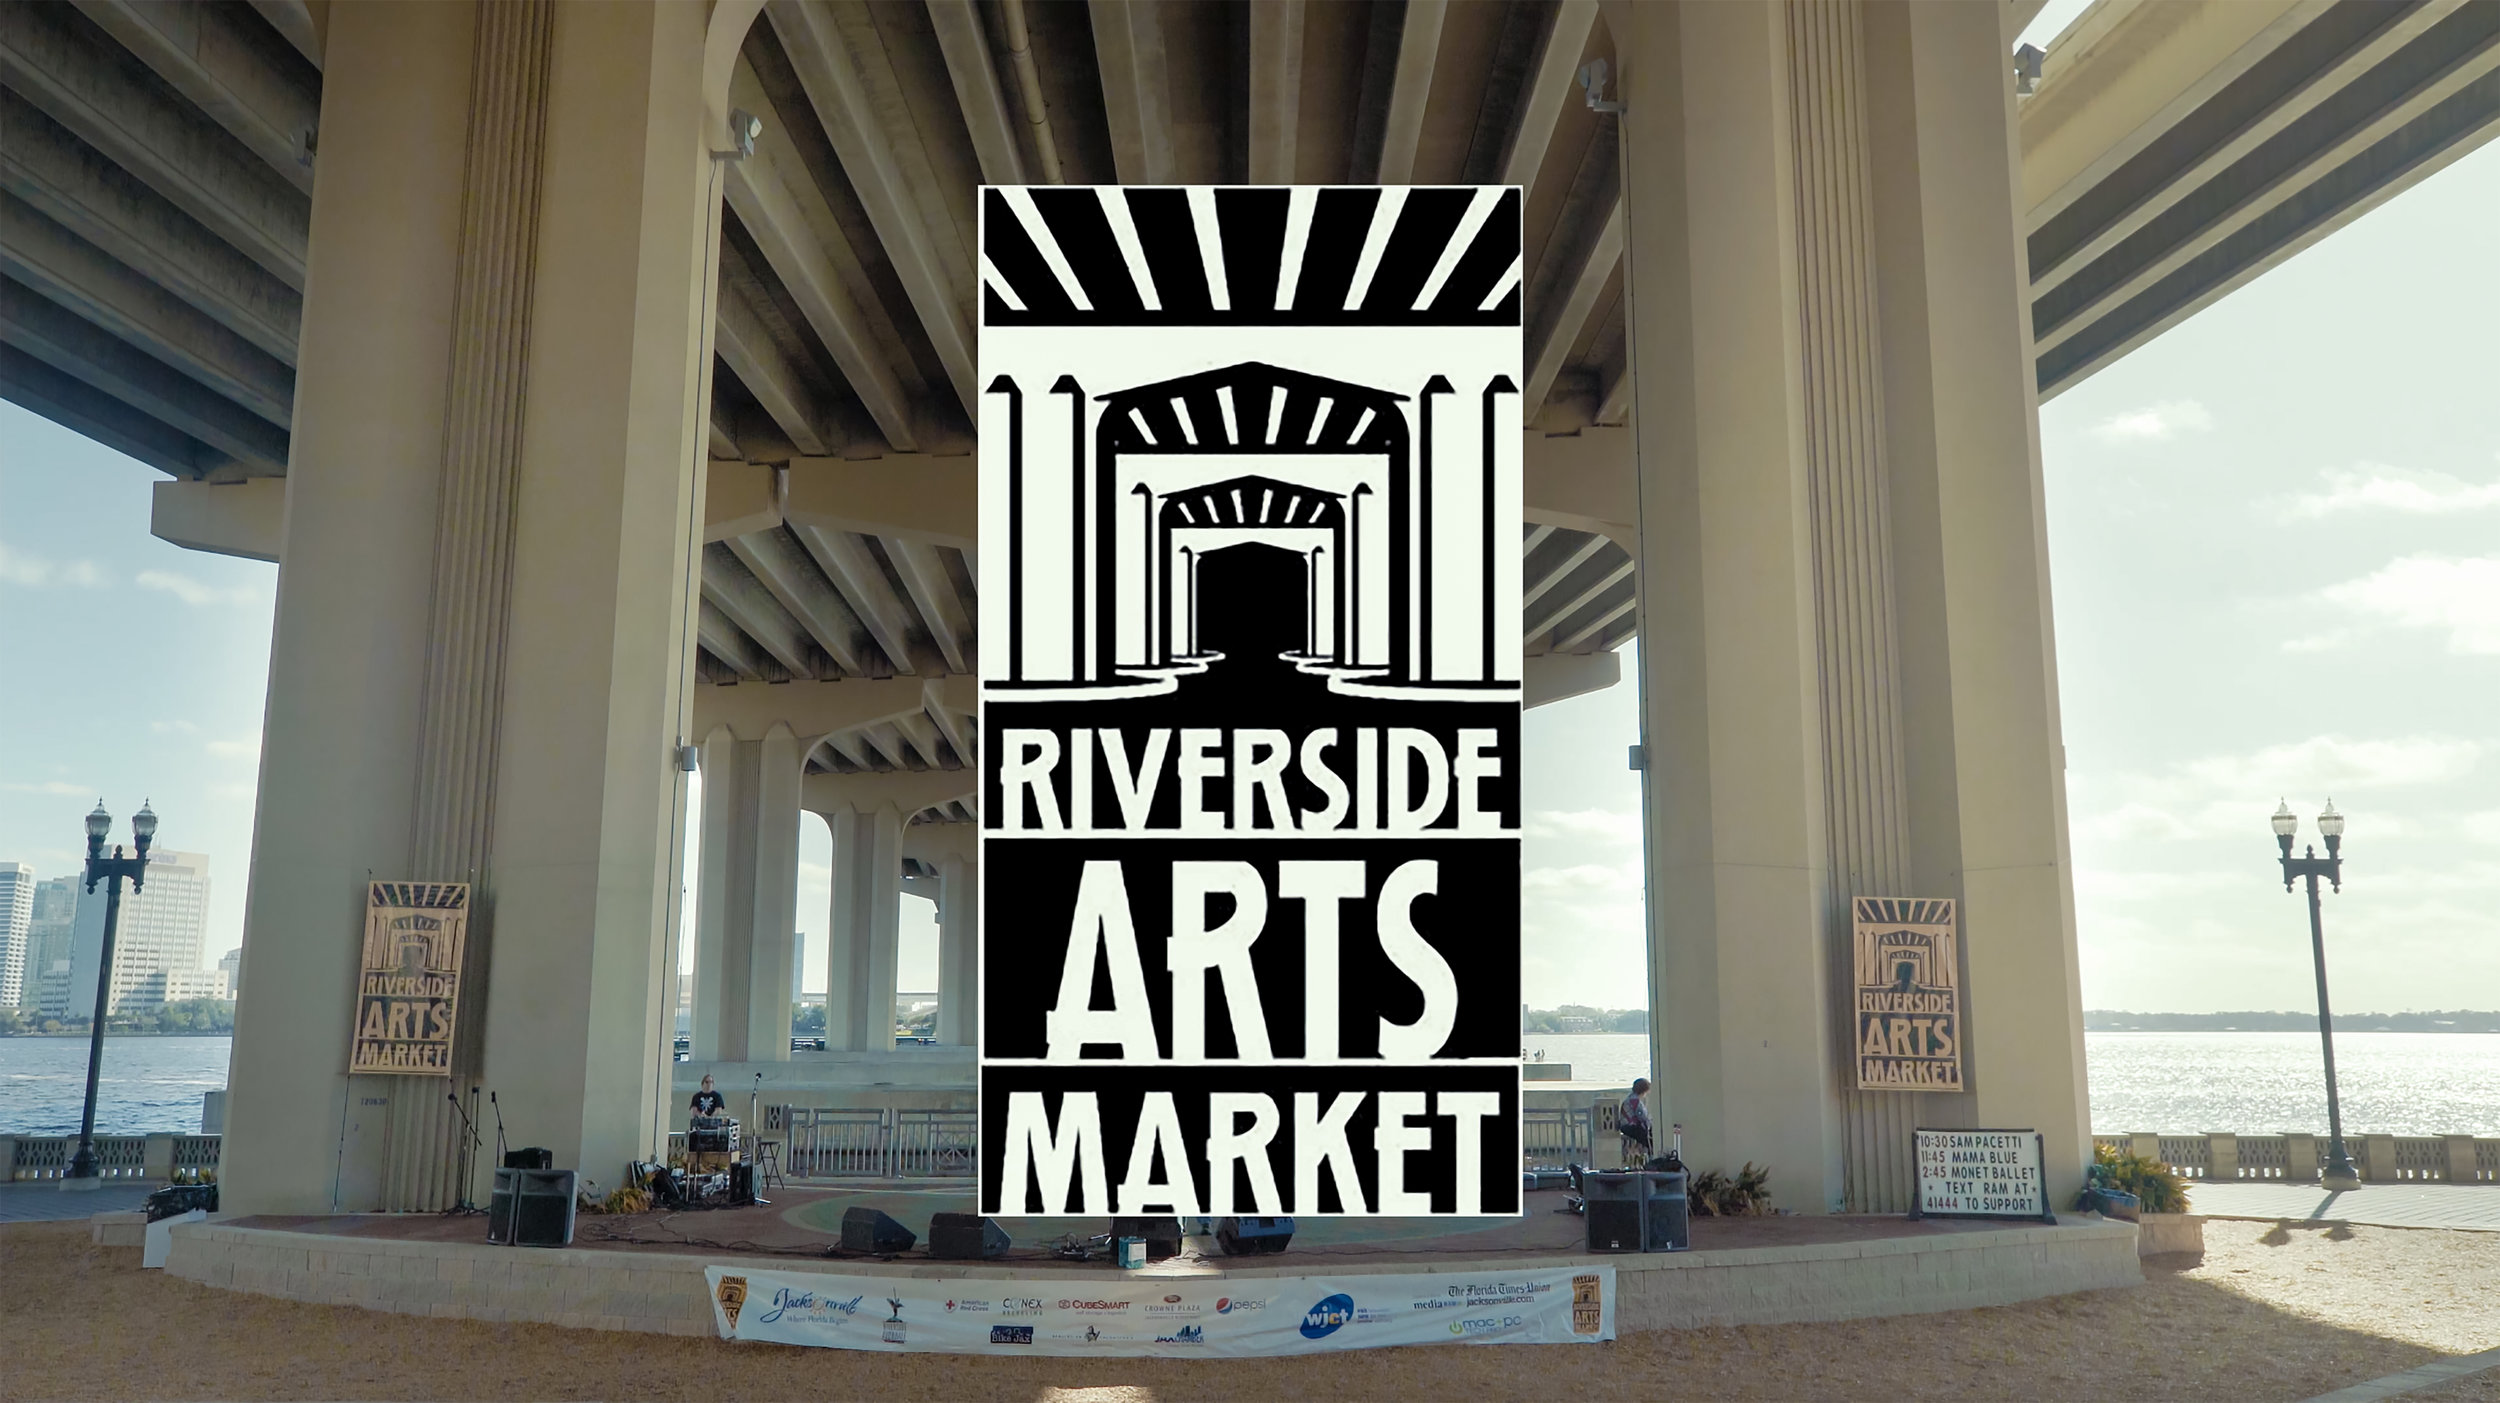 Riverside Arts Market - A lively farmers' market held every Saturday featuring local artists, food vendors, entertainment, and a stunning view of the St. Johns River.View in Directory